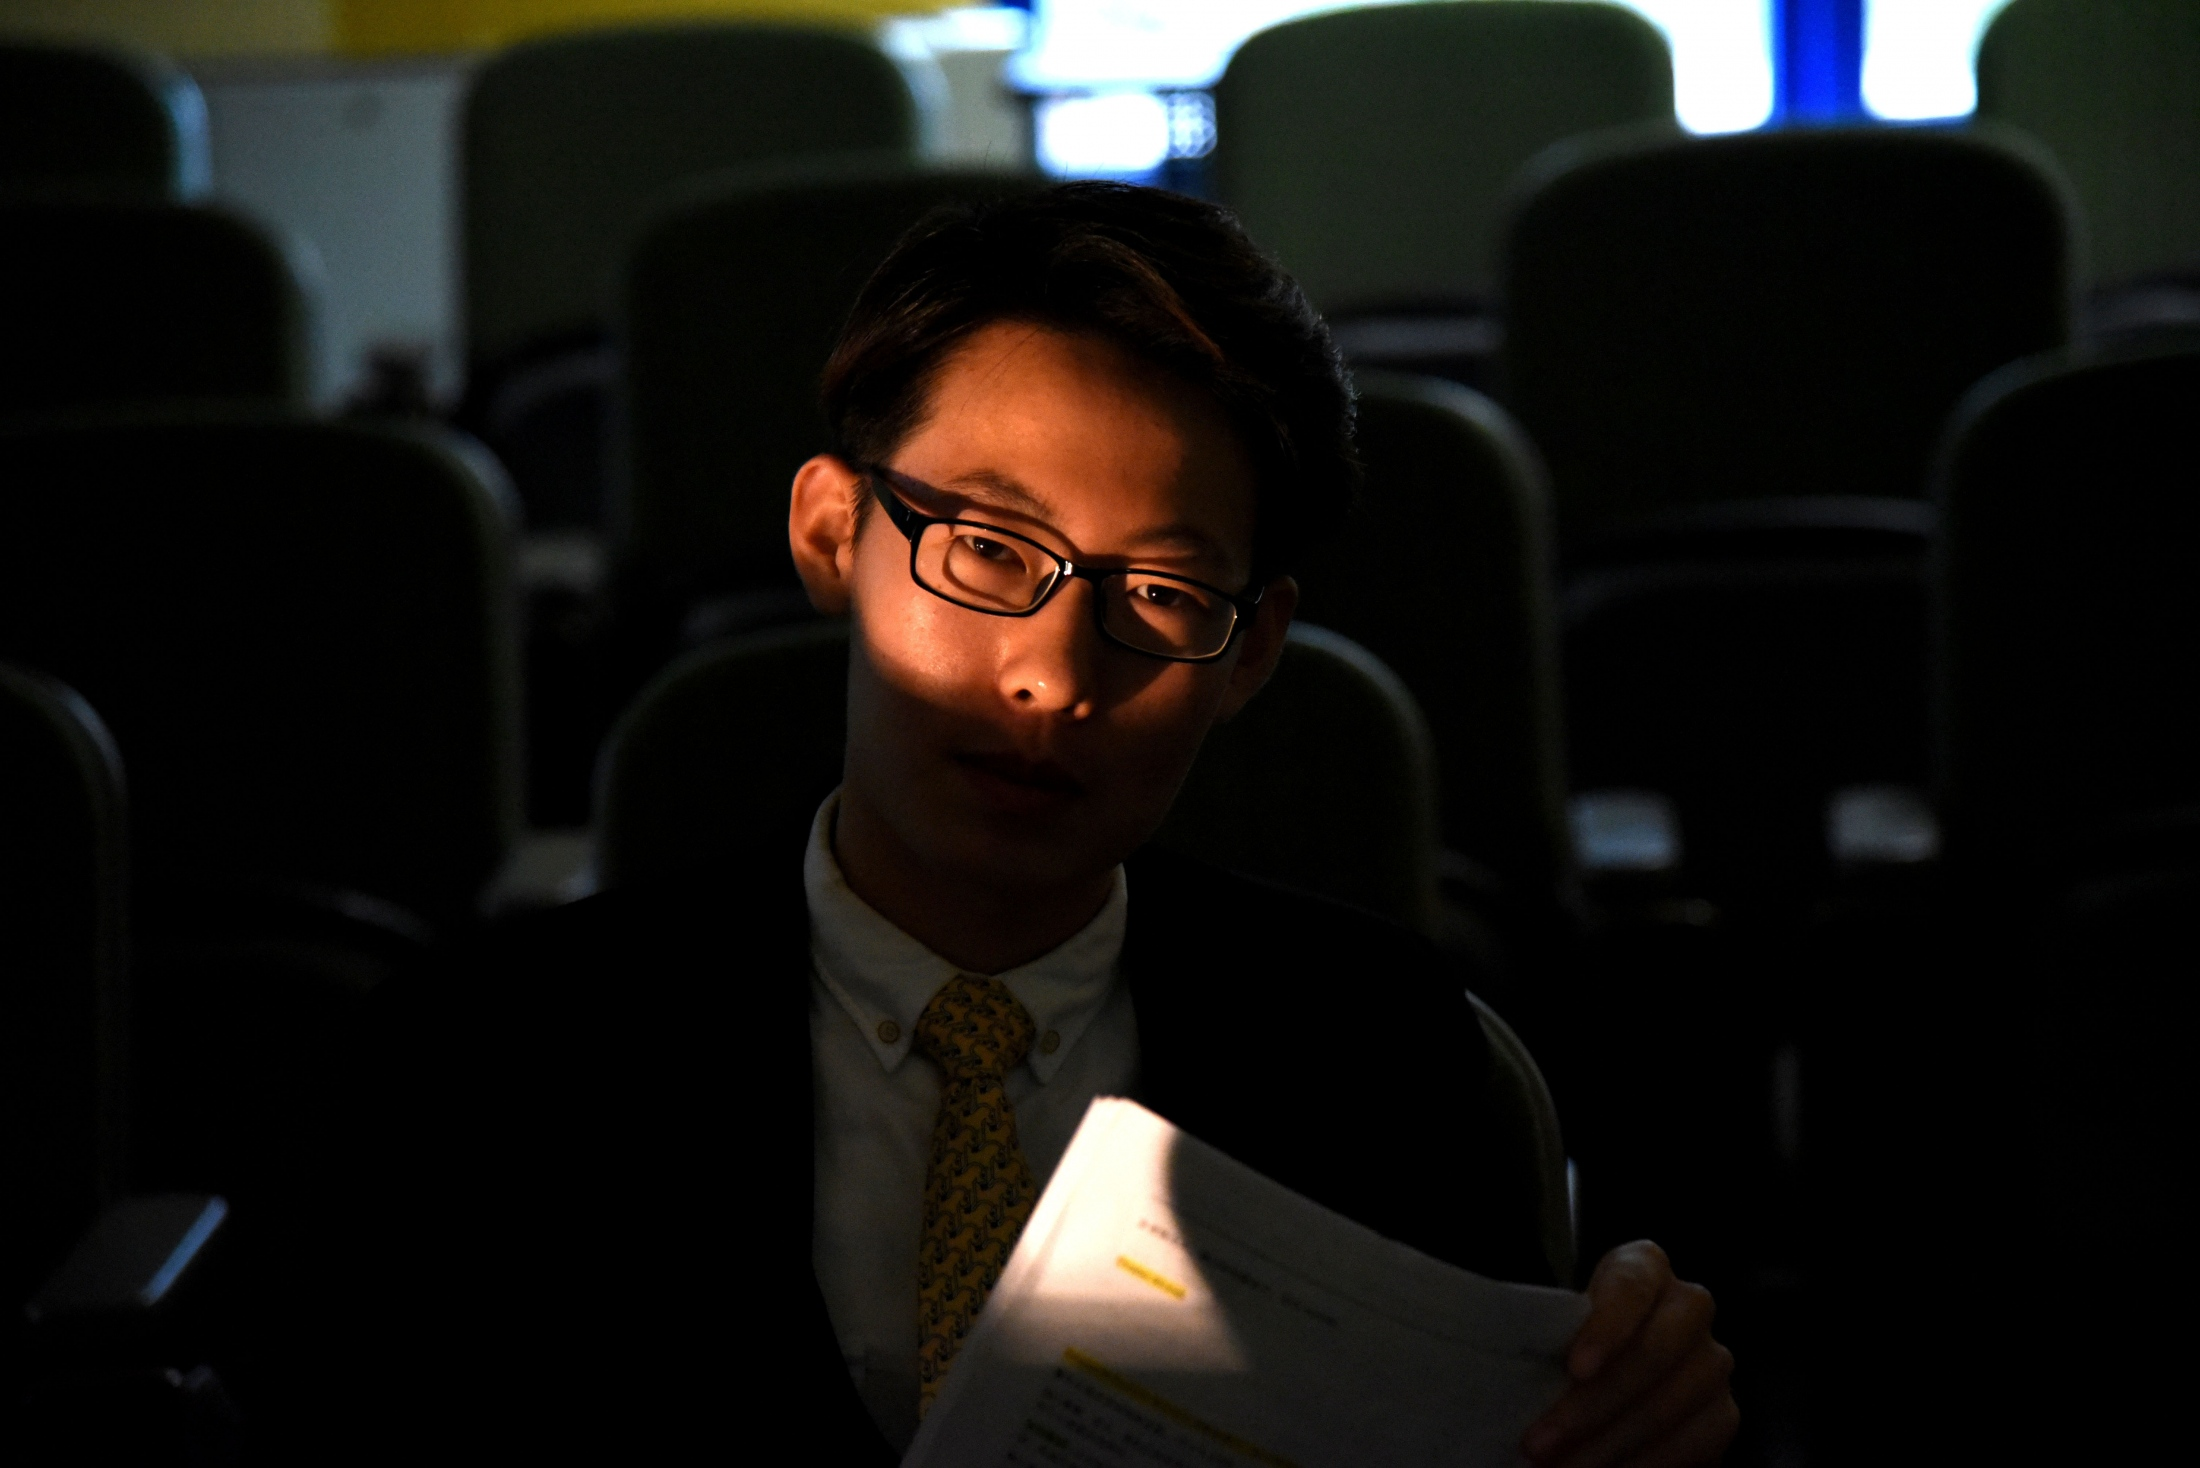 Polaris Cao recites his lines for his upcoming show in a classroom at Penn State, in Oct 2017.